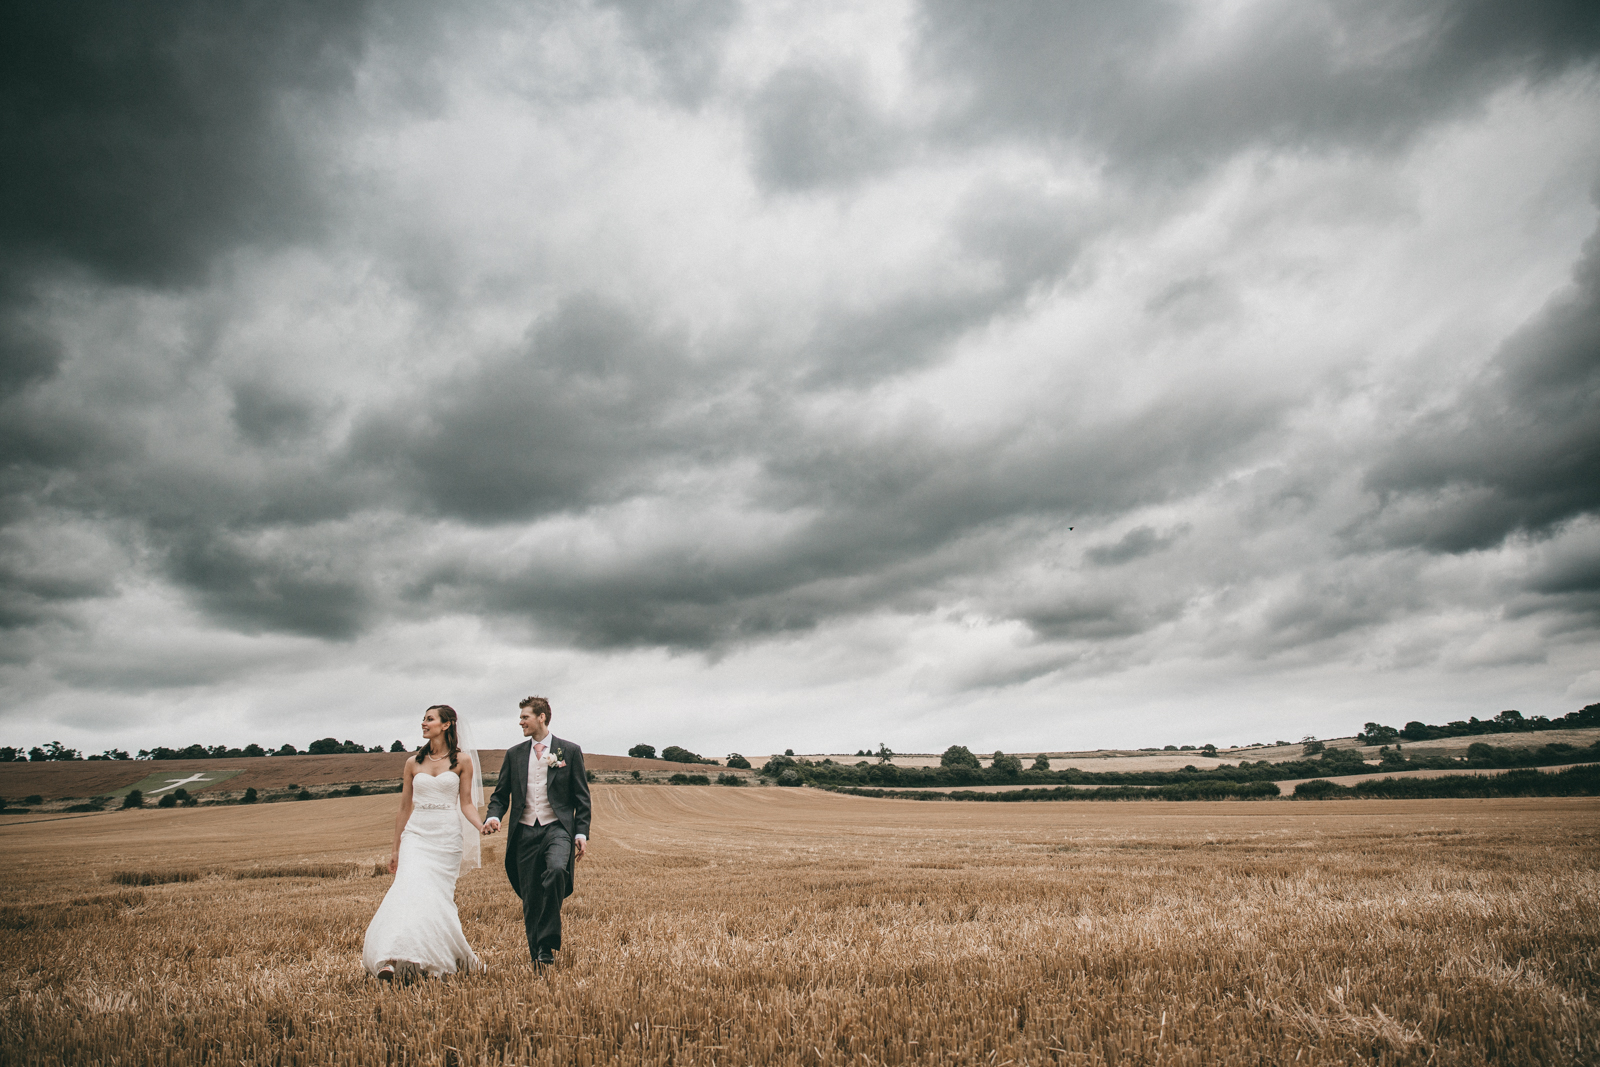 Chris Bradshaw Wedding Photography - Simon & Amanda Wedding Photos-70